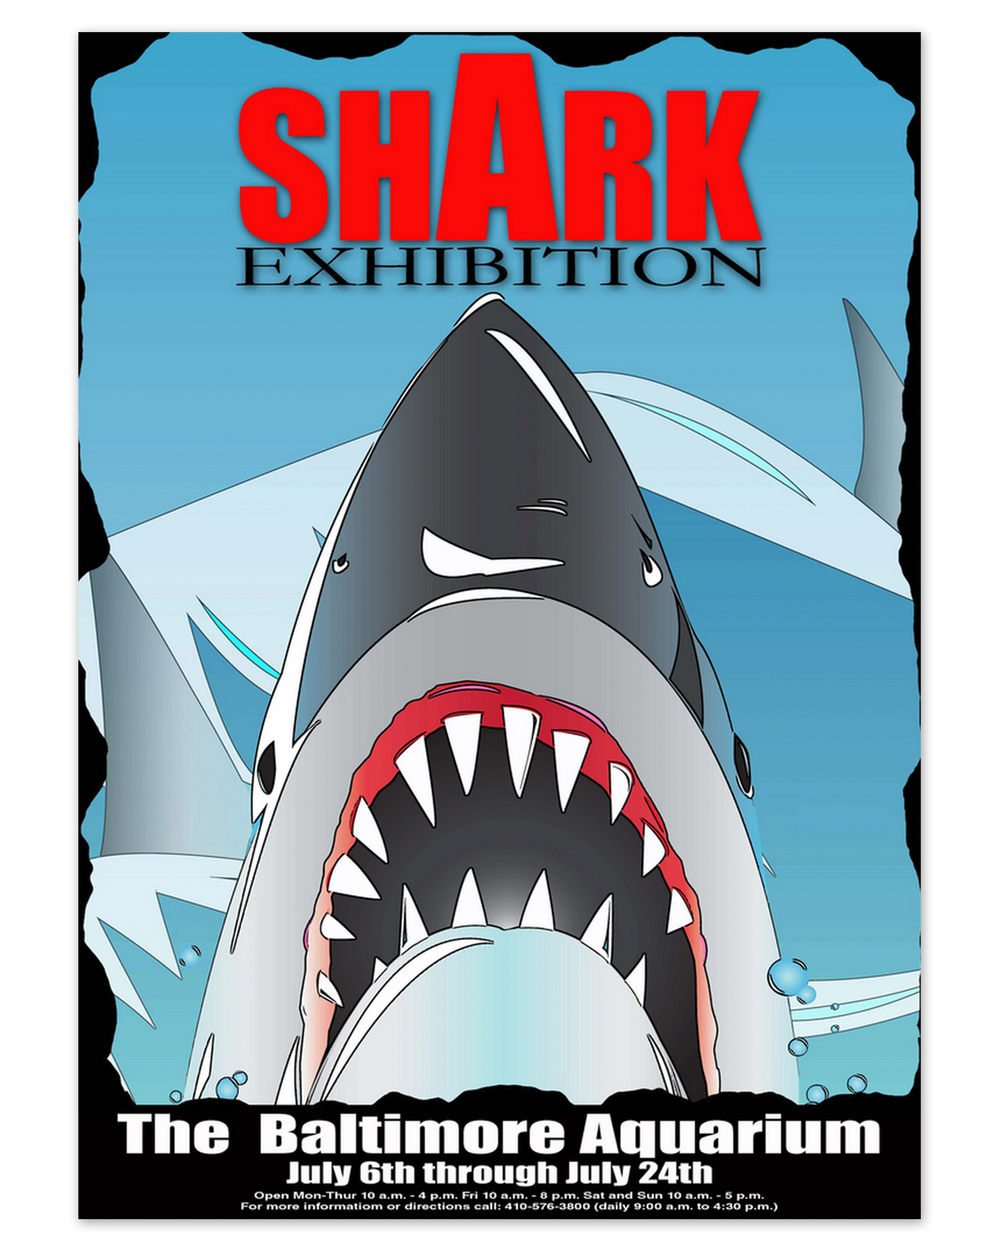 Shark Exhibition Poster (2008)